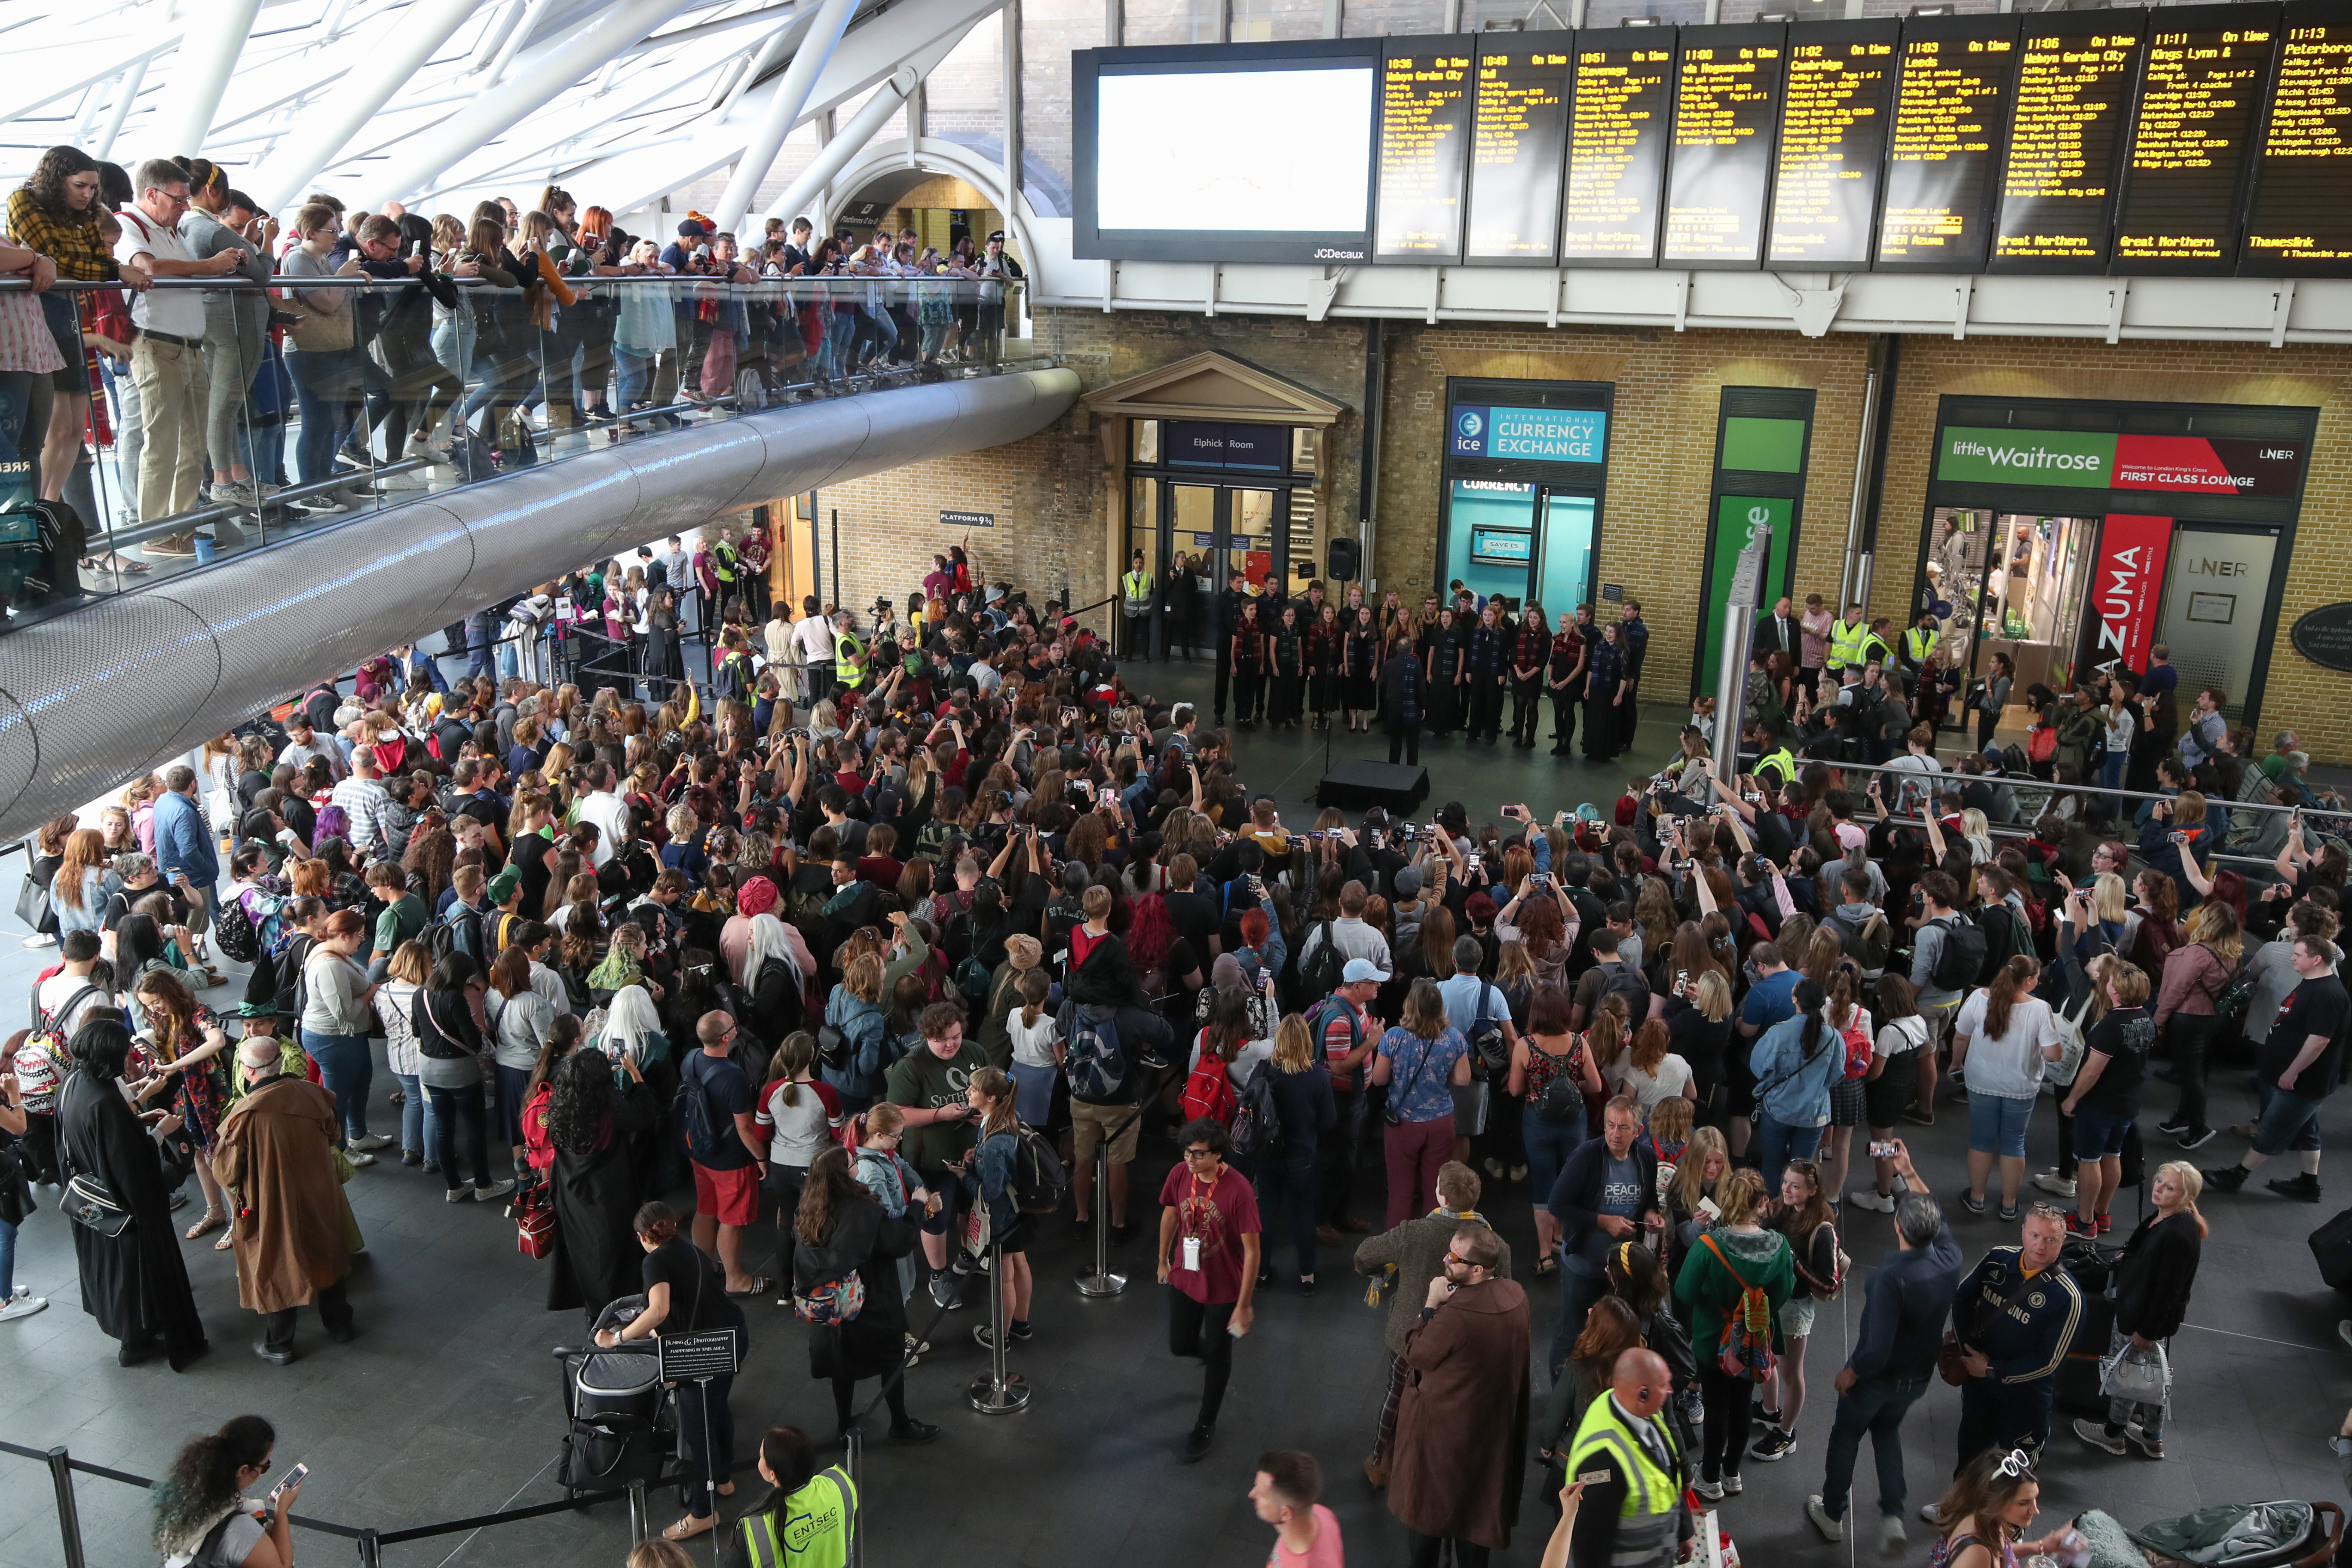 Choir at King's Cross Station for Hogwarts Day